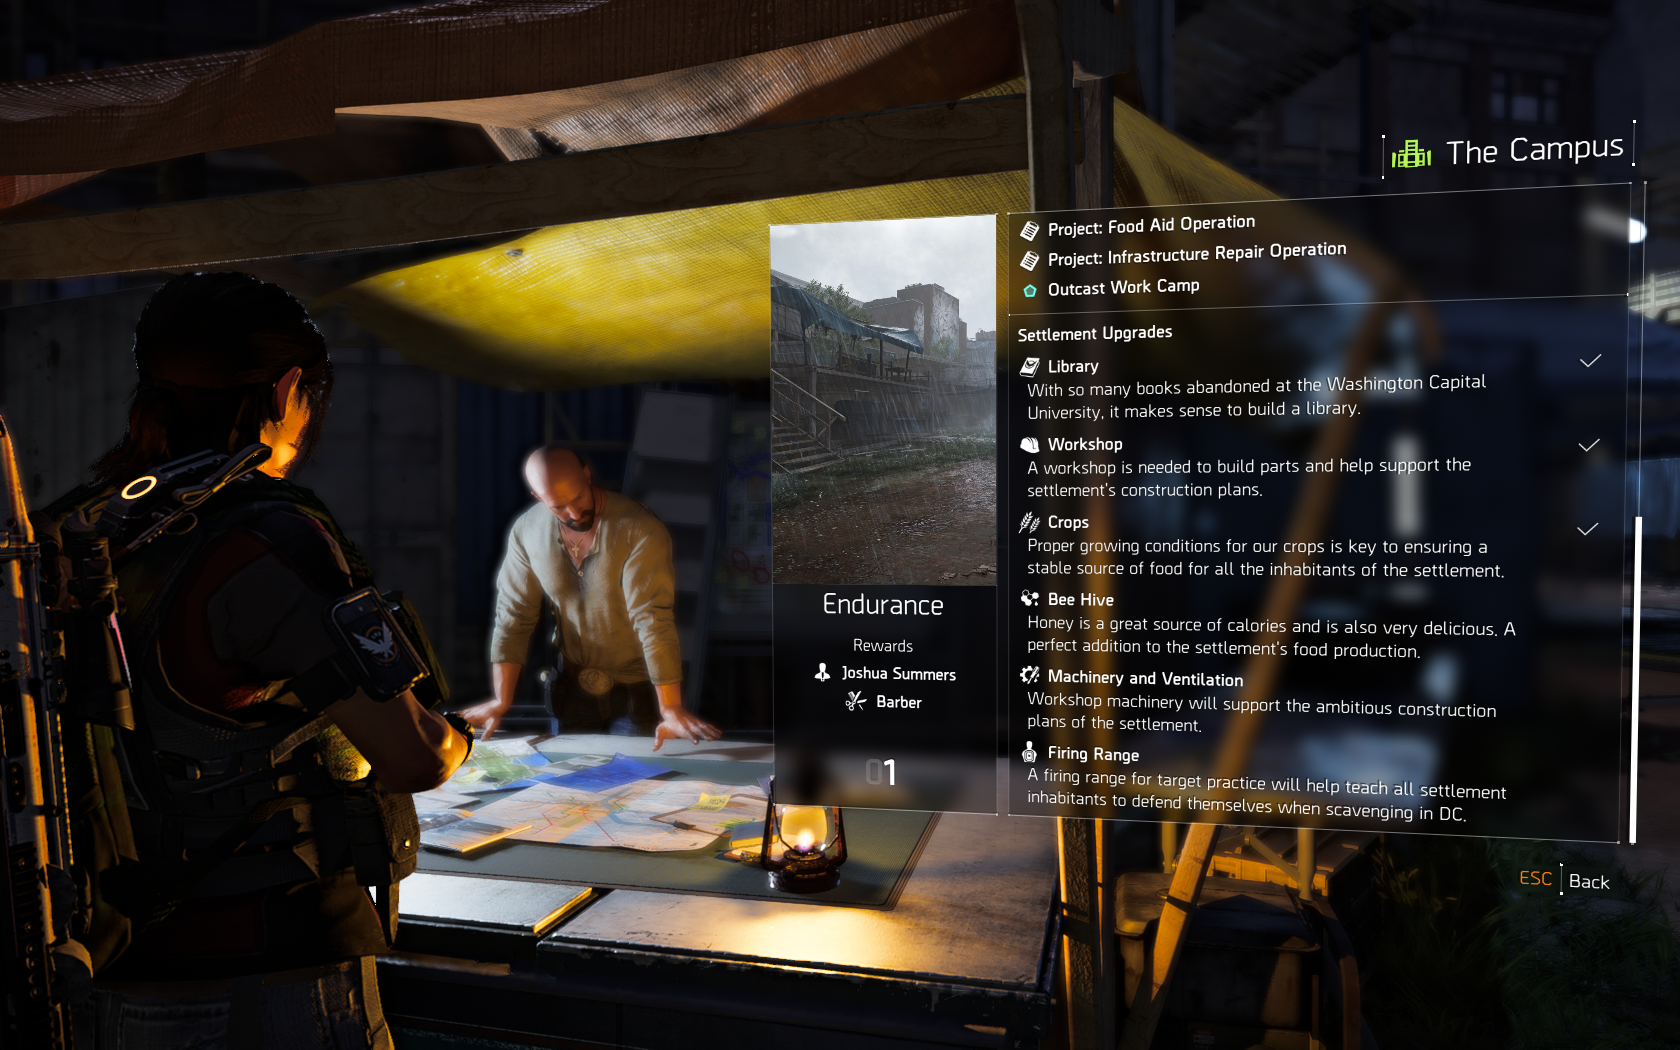 Tom Clancy's The Division 2 Screenshot 2019.03.18 - 12.00.40.15.png